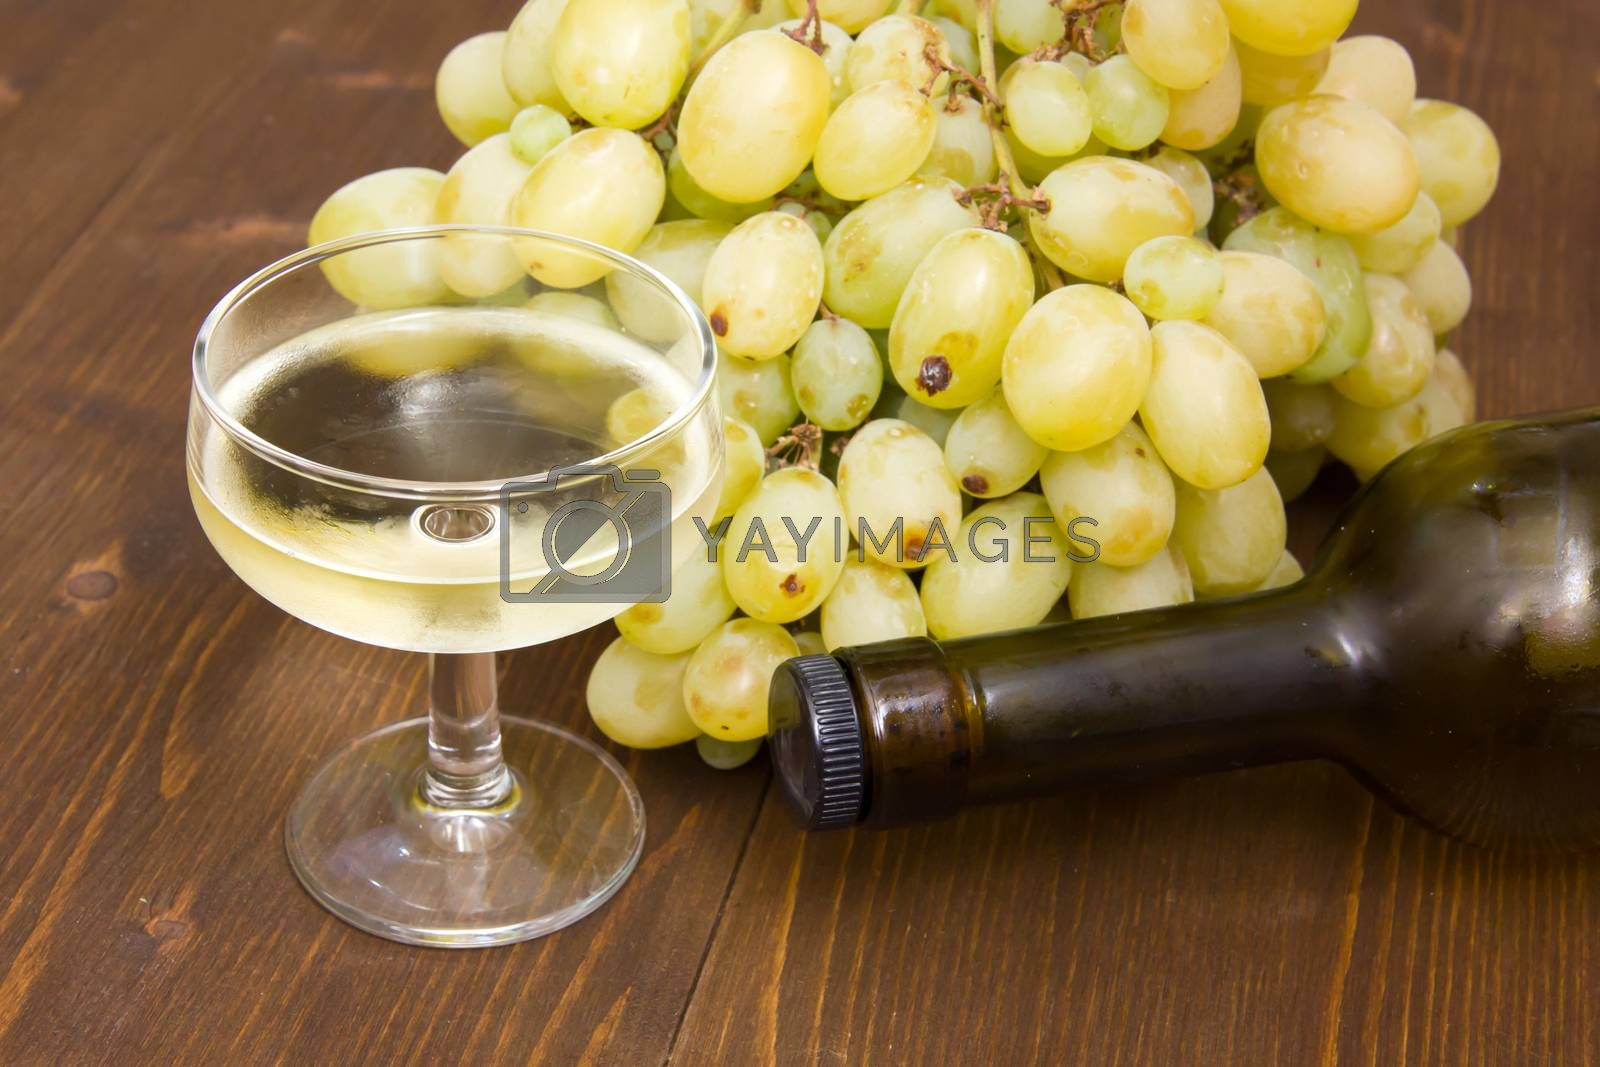 Glass of wine with grapes and bottle on wooden table